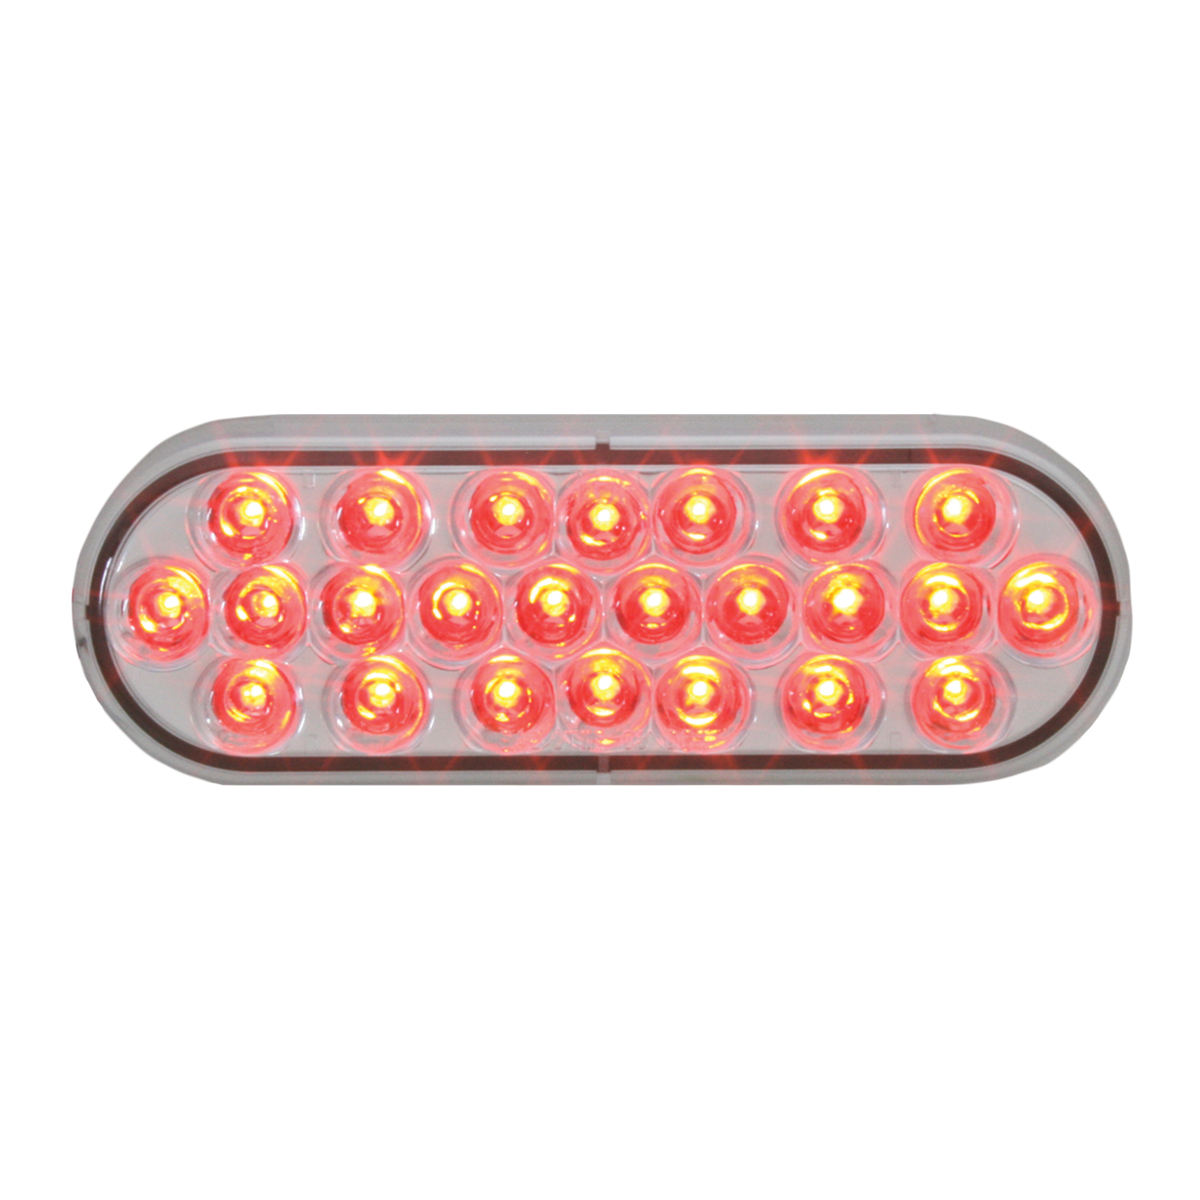 #78234 Oval Pearl LED Flat Red/Clear Light - Slanted